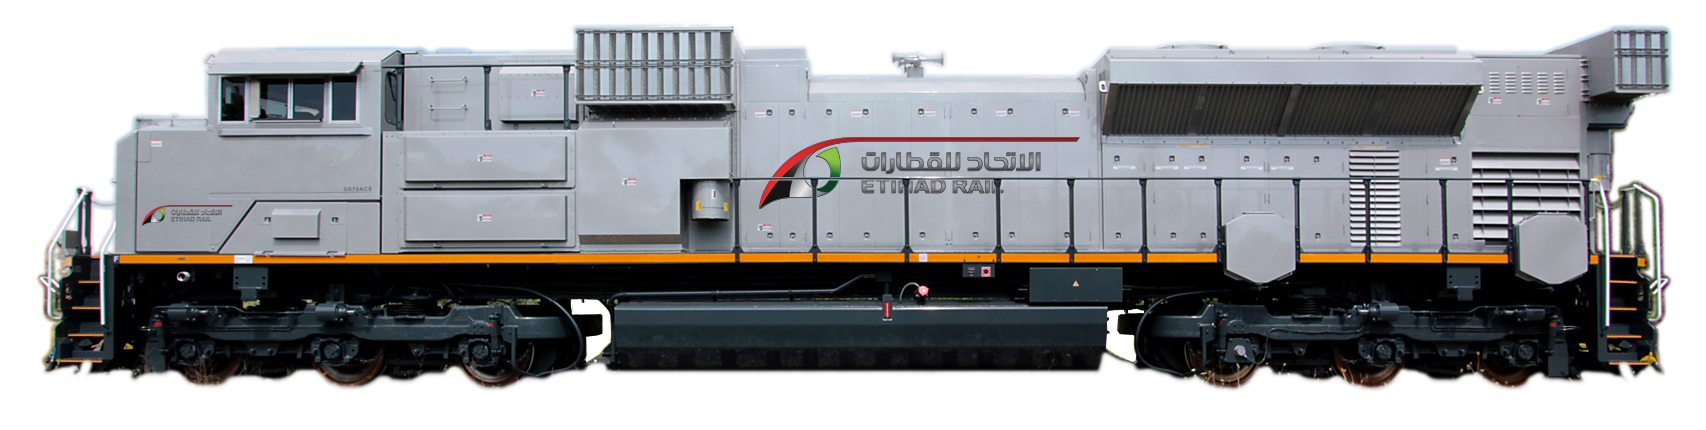 Electro Motive Diesel >> American Supplier Onboard For Uae Rail Network Middle East